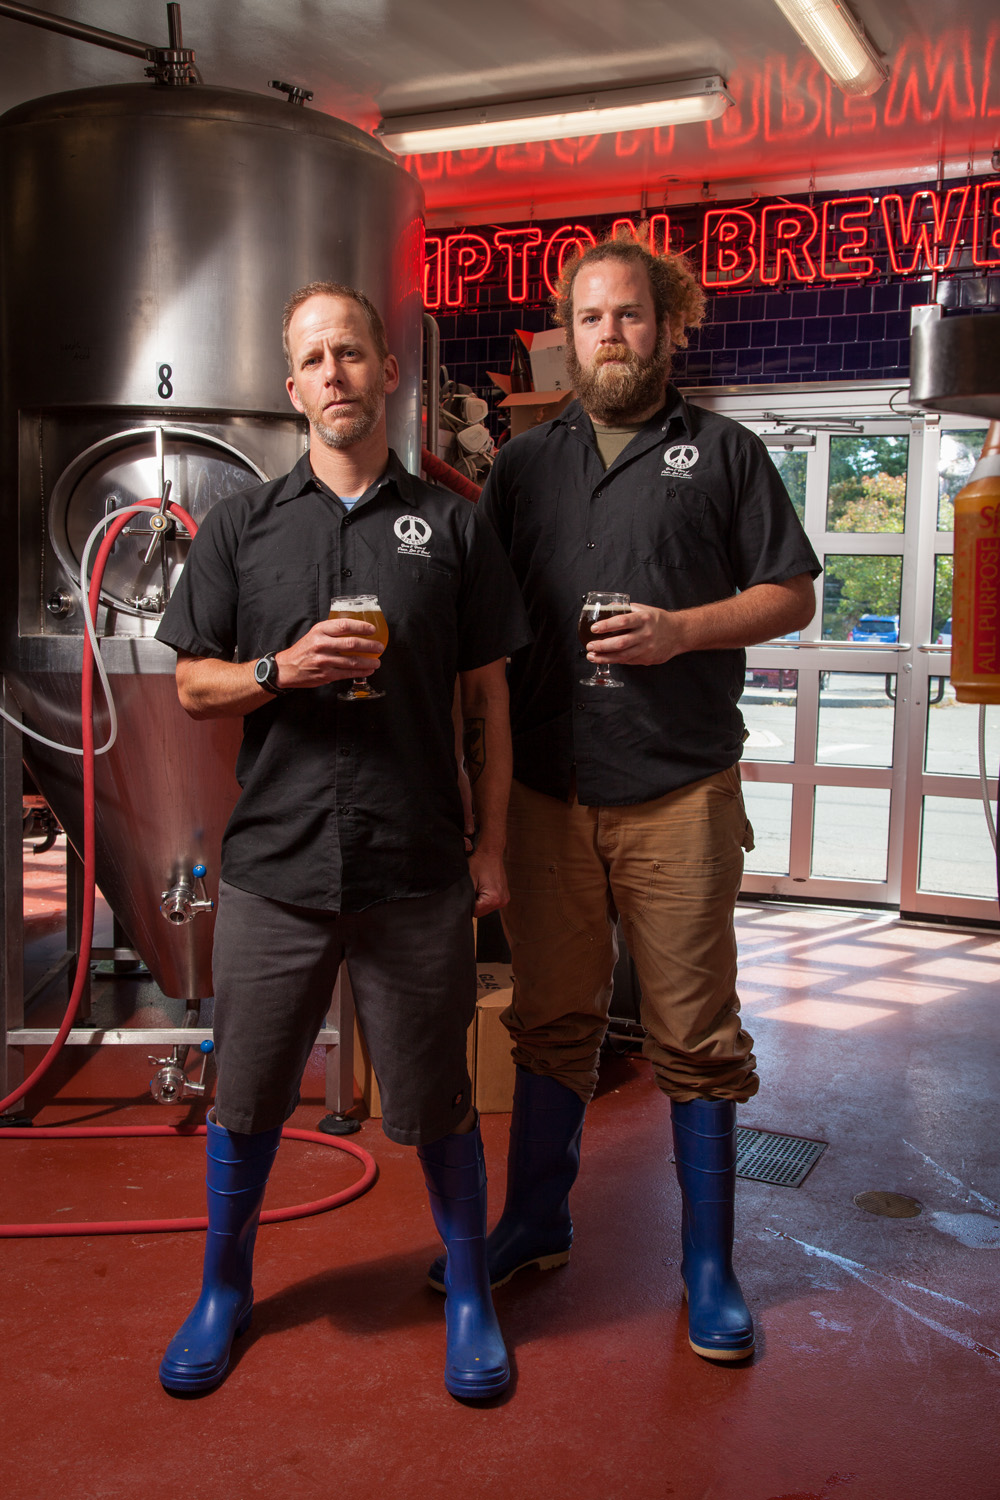 Donald (Boog) Patcher, Head Brewer and Steve Bilodeau, Assistant Brewer Northampton Brewery Northampton, MA Established in 1987. NOHO is the oldest Brewpub in New England.